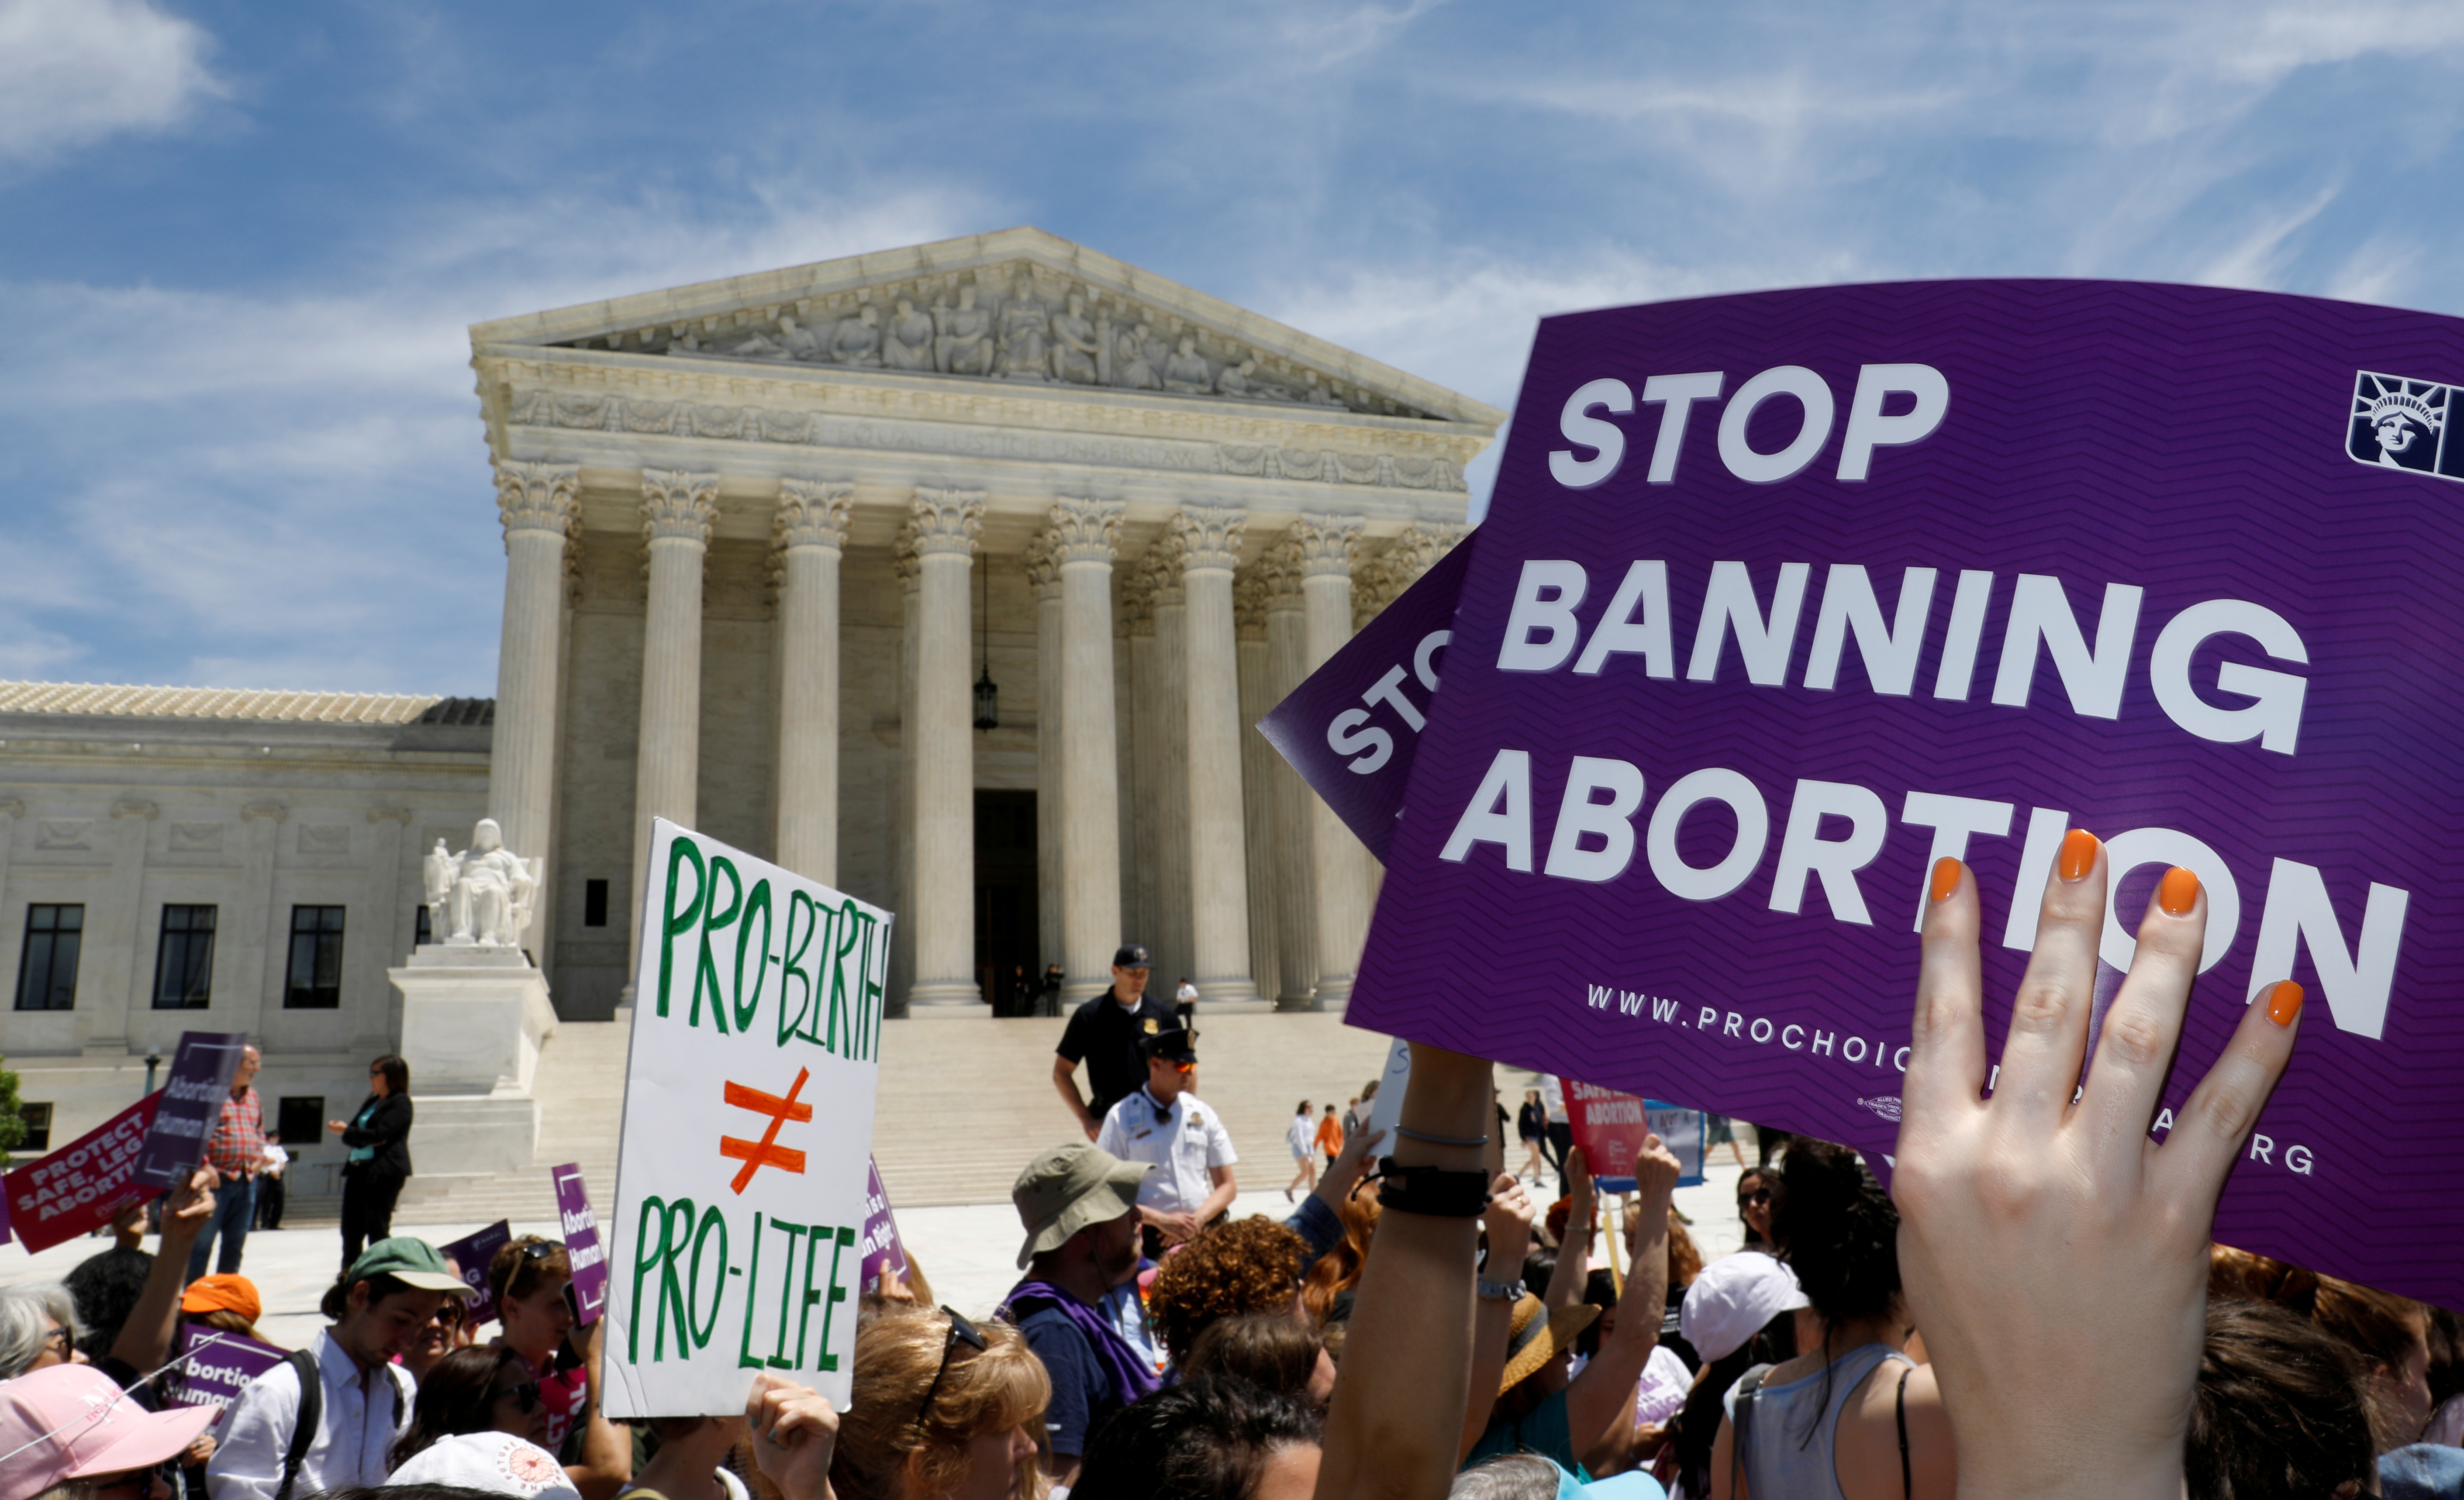 Abortion rights activists outside the Supreme Court